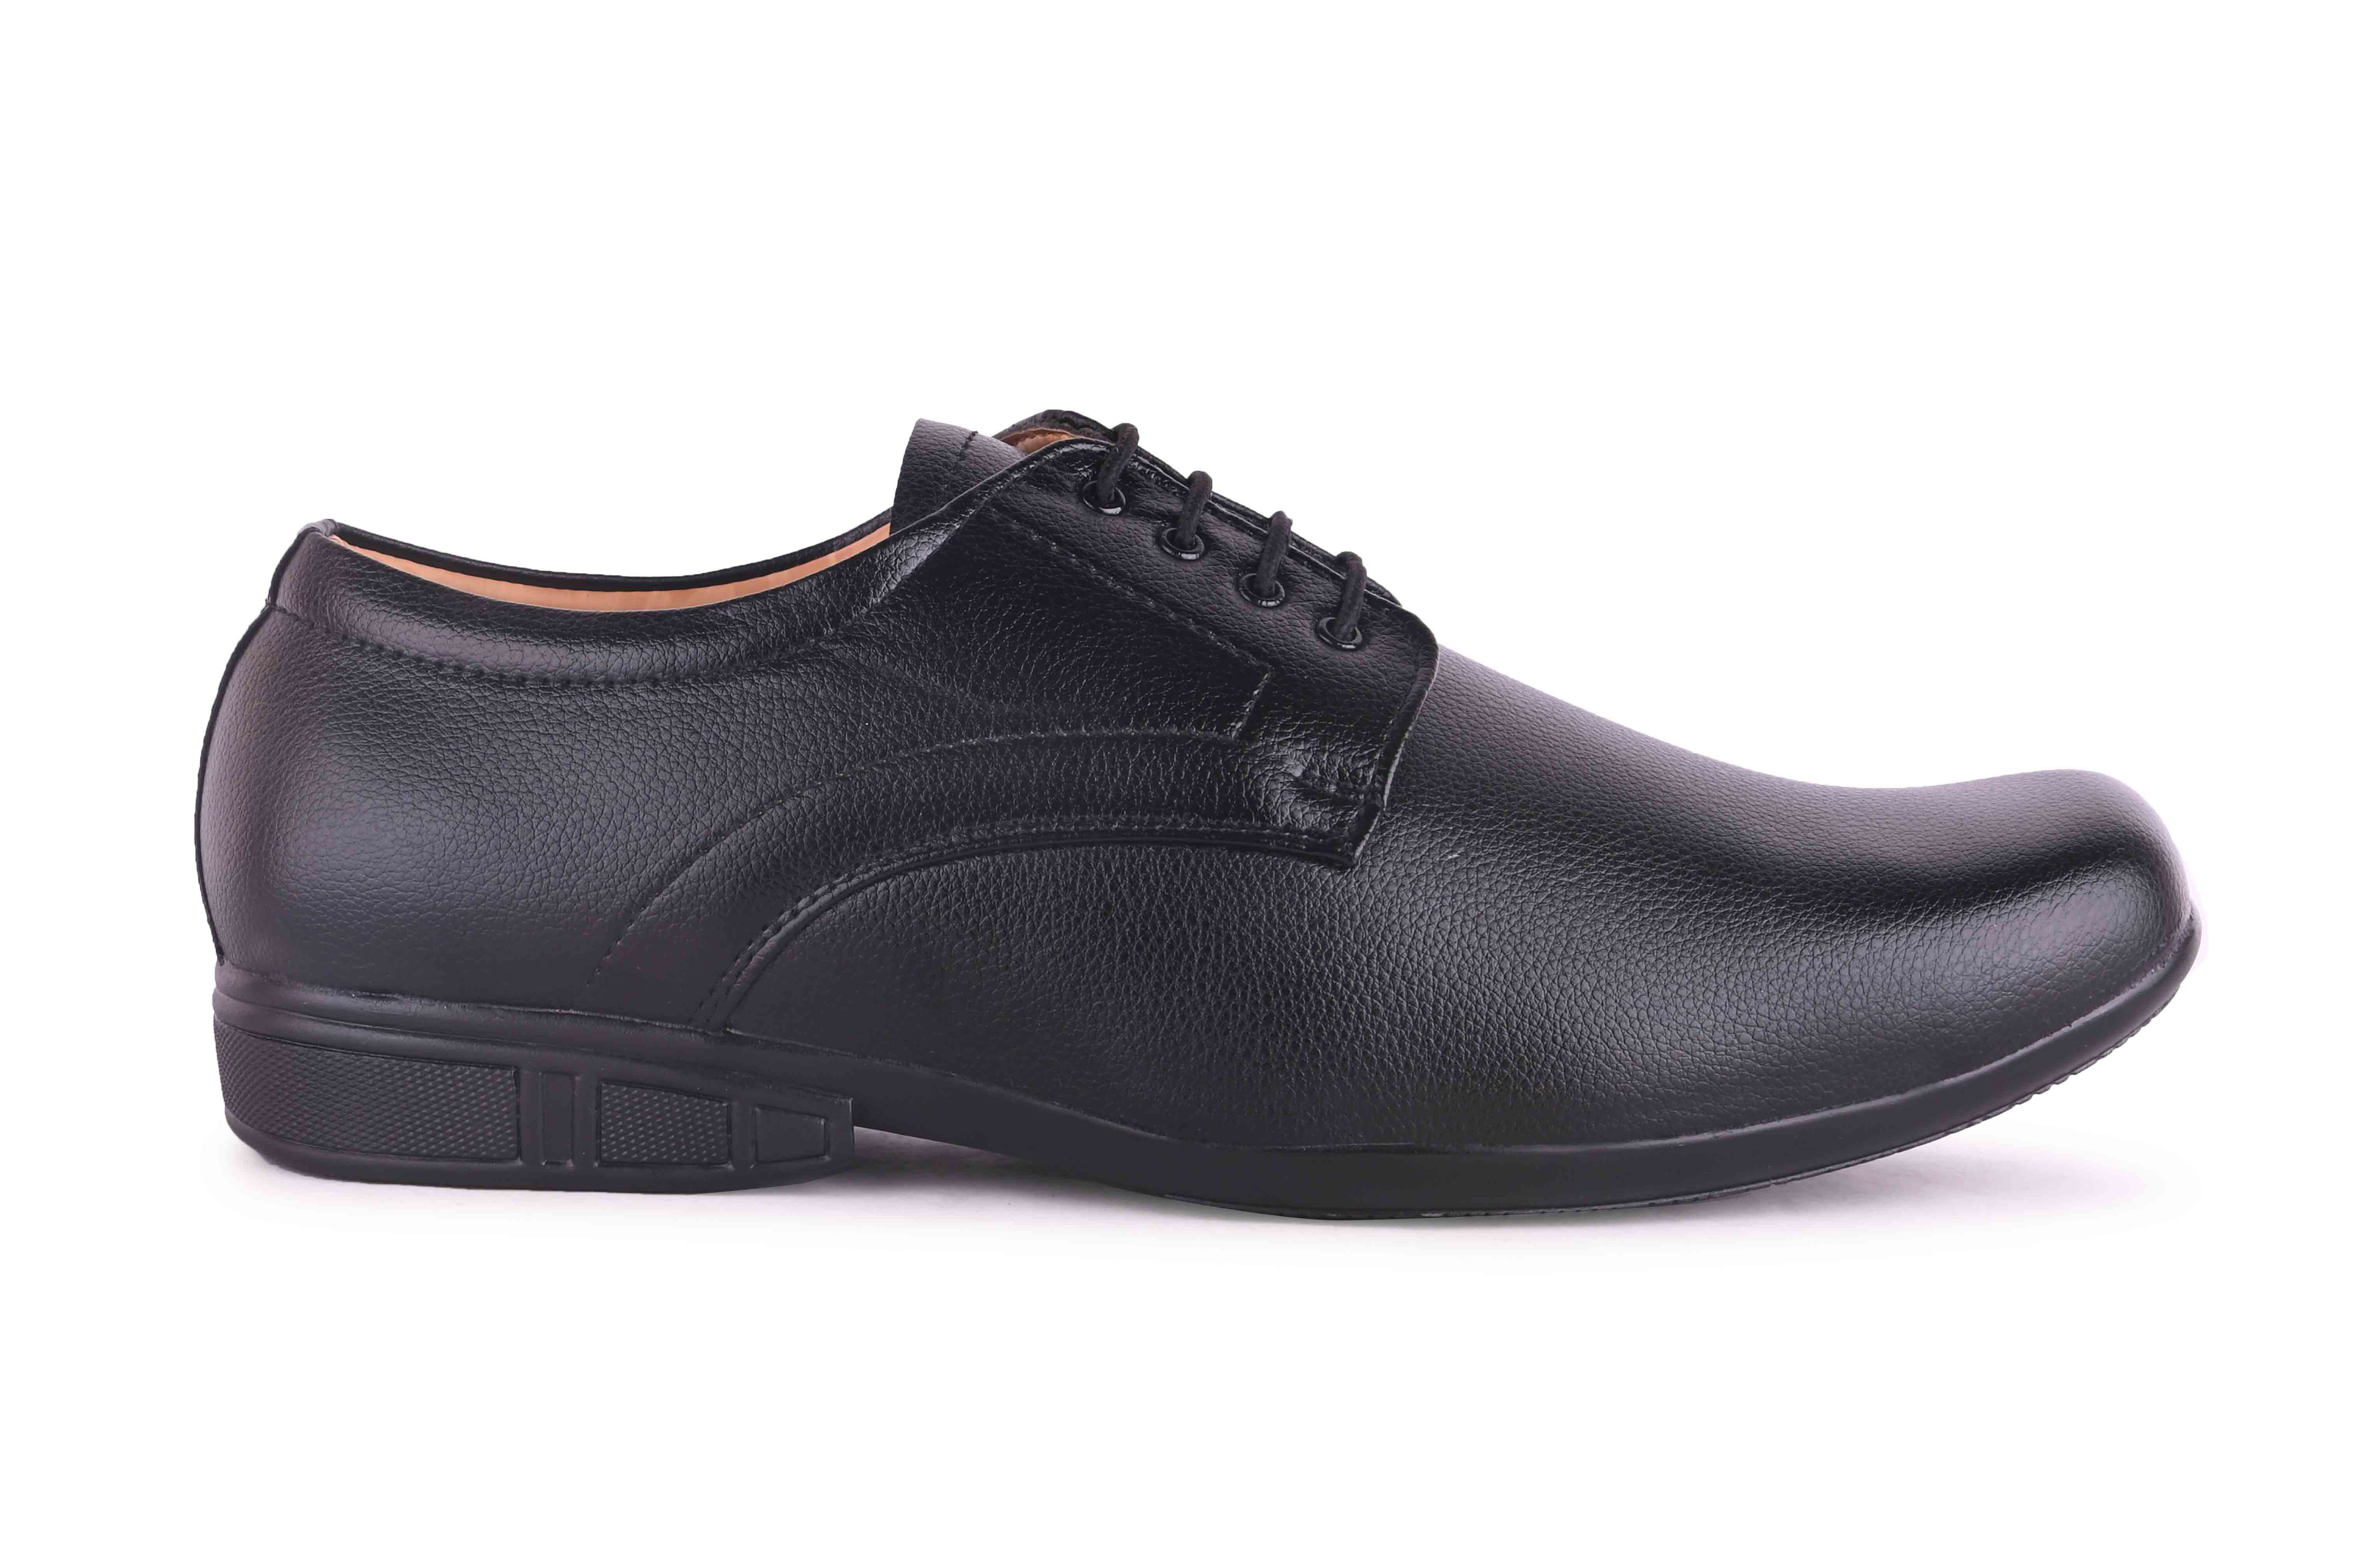 Almighty Black Men's Formal Shoes Derby For Men BBDBL0K (BLACK, 11-13, 8 PAIRS)